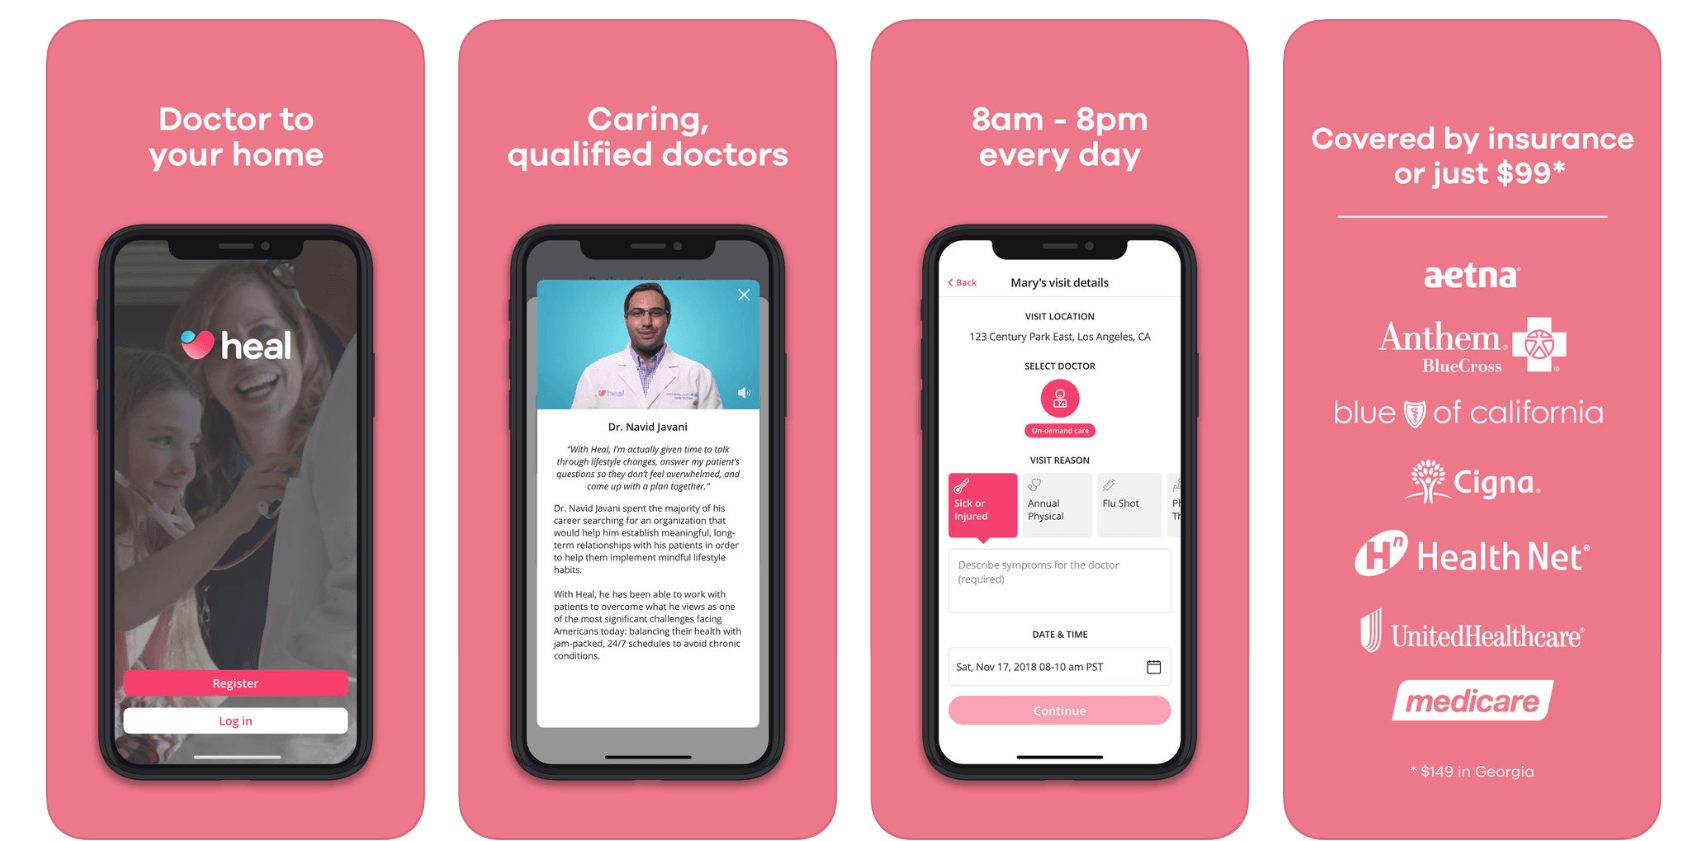 Heal Acquires Doctors on Call, Expands House Call Service to NYC